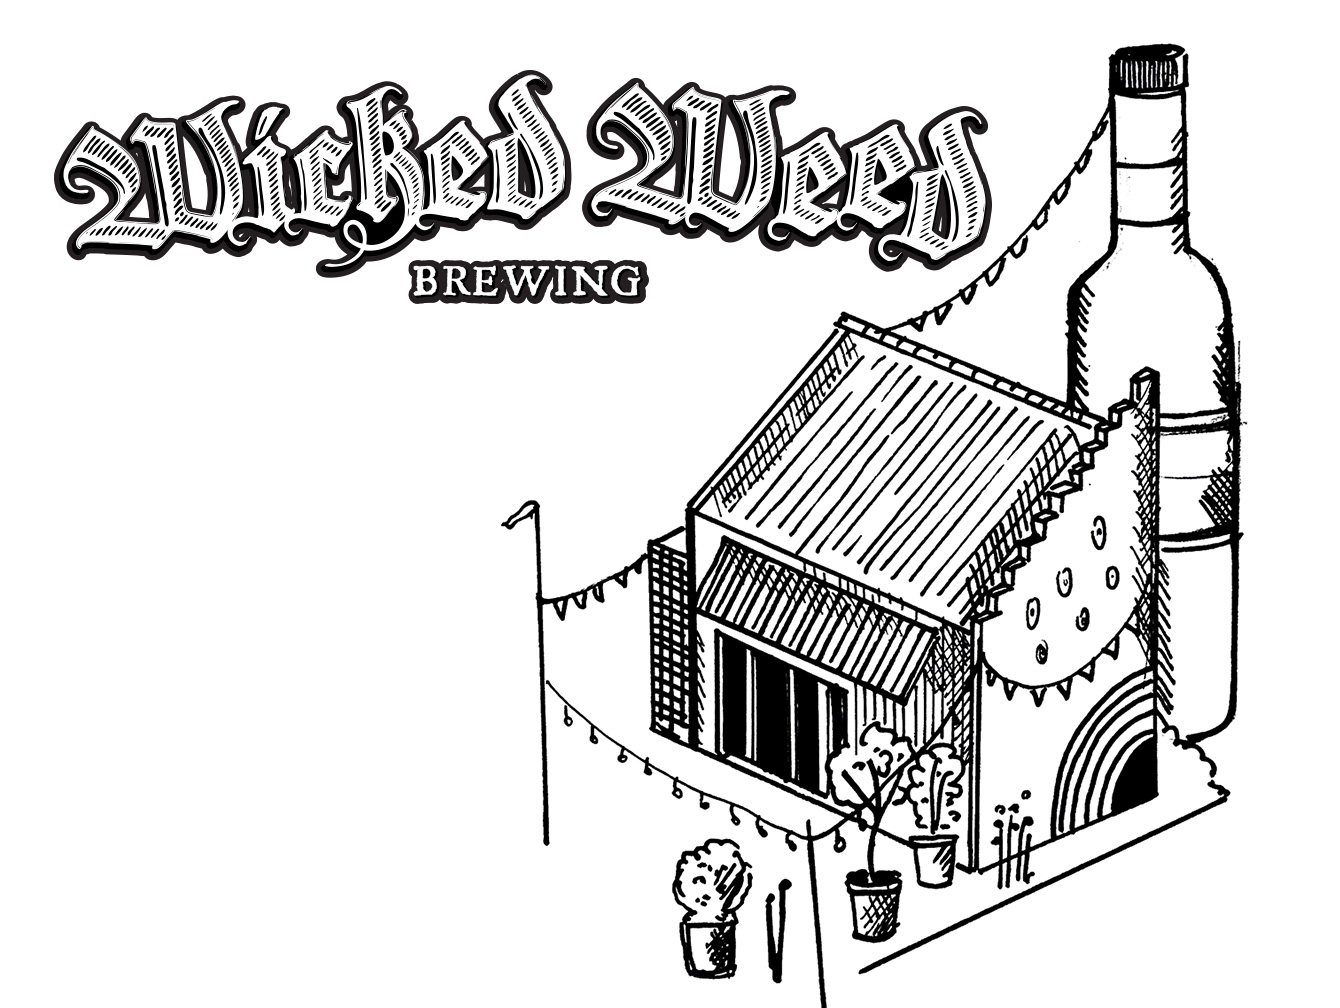 The Brewery Wicked Weed Brewing